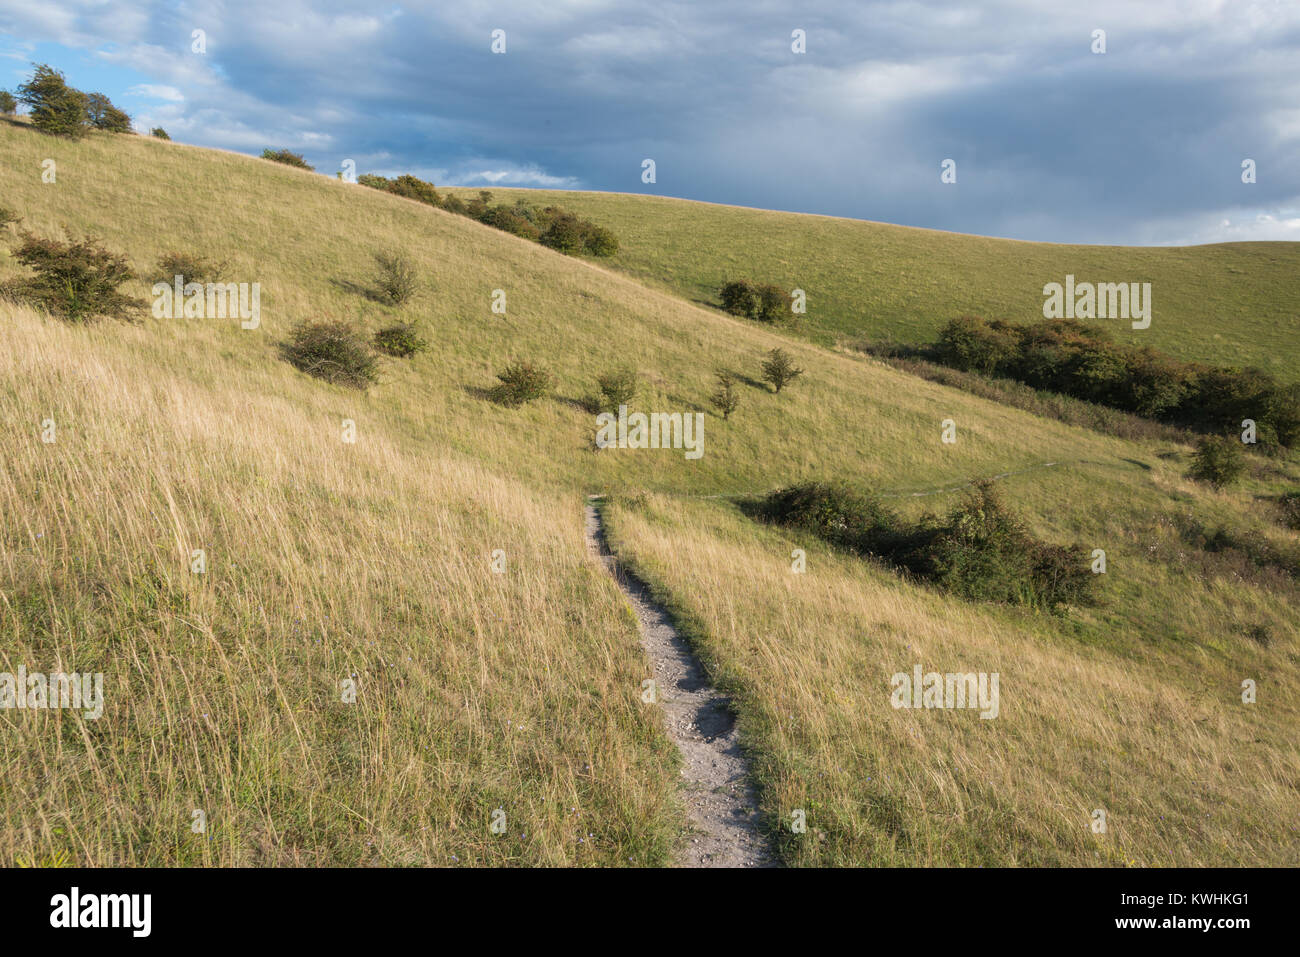 Barton Hills National Nature Reserve in Barton-le-Clay, Bedfordshire - Stock Image